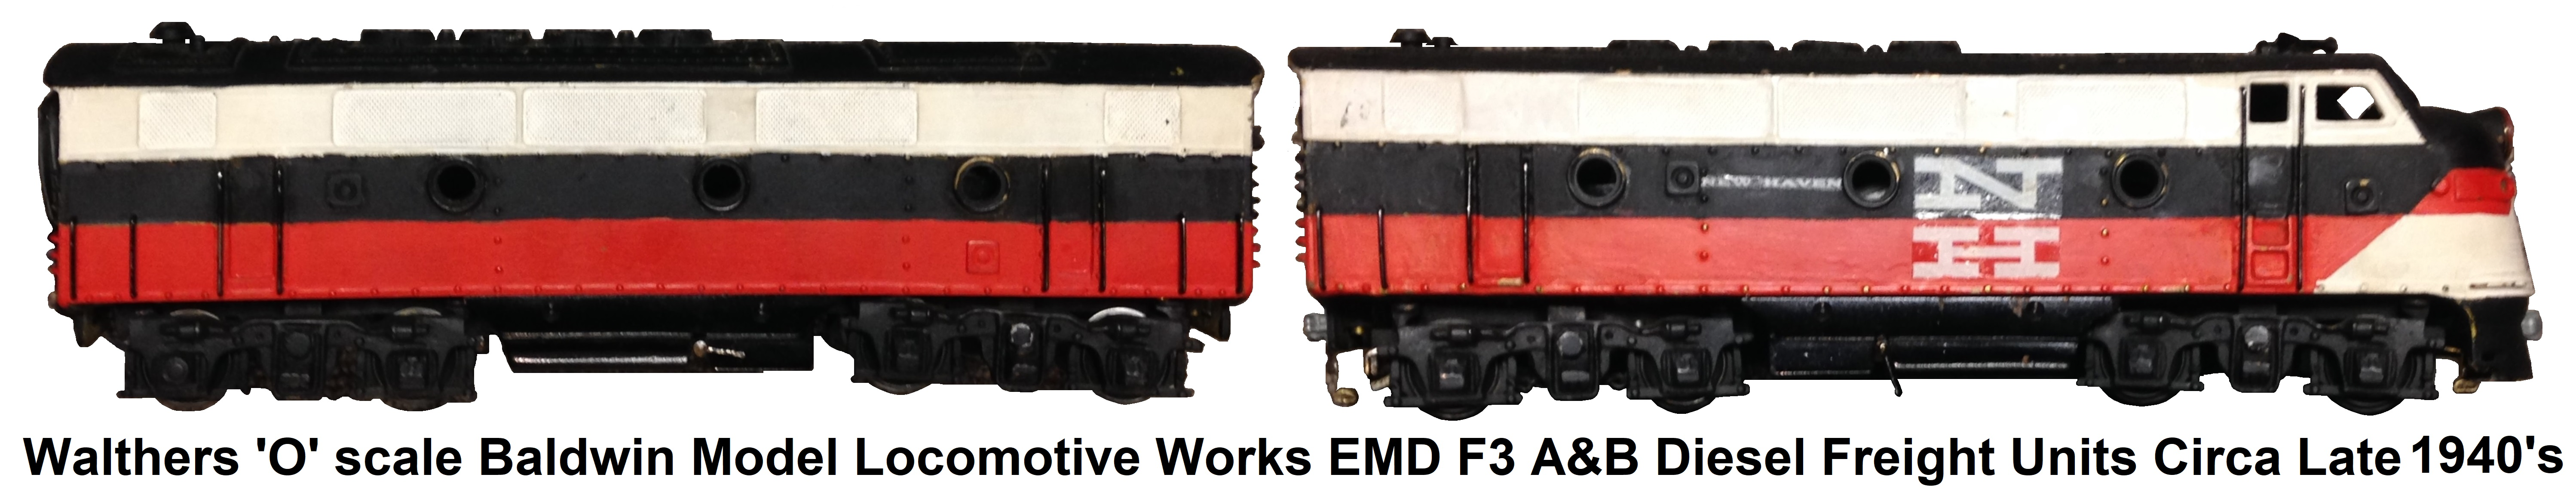 Walthers 'O' scale B-Lectric Line Baldwin Model Locomotive Works EMD F3 A&B Diesel Freight Units Circa Late 1940's